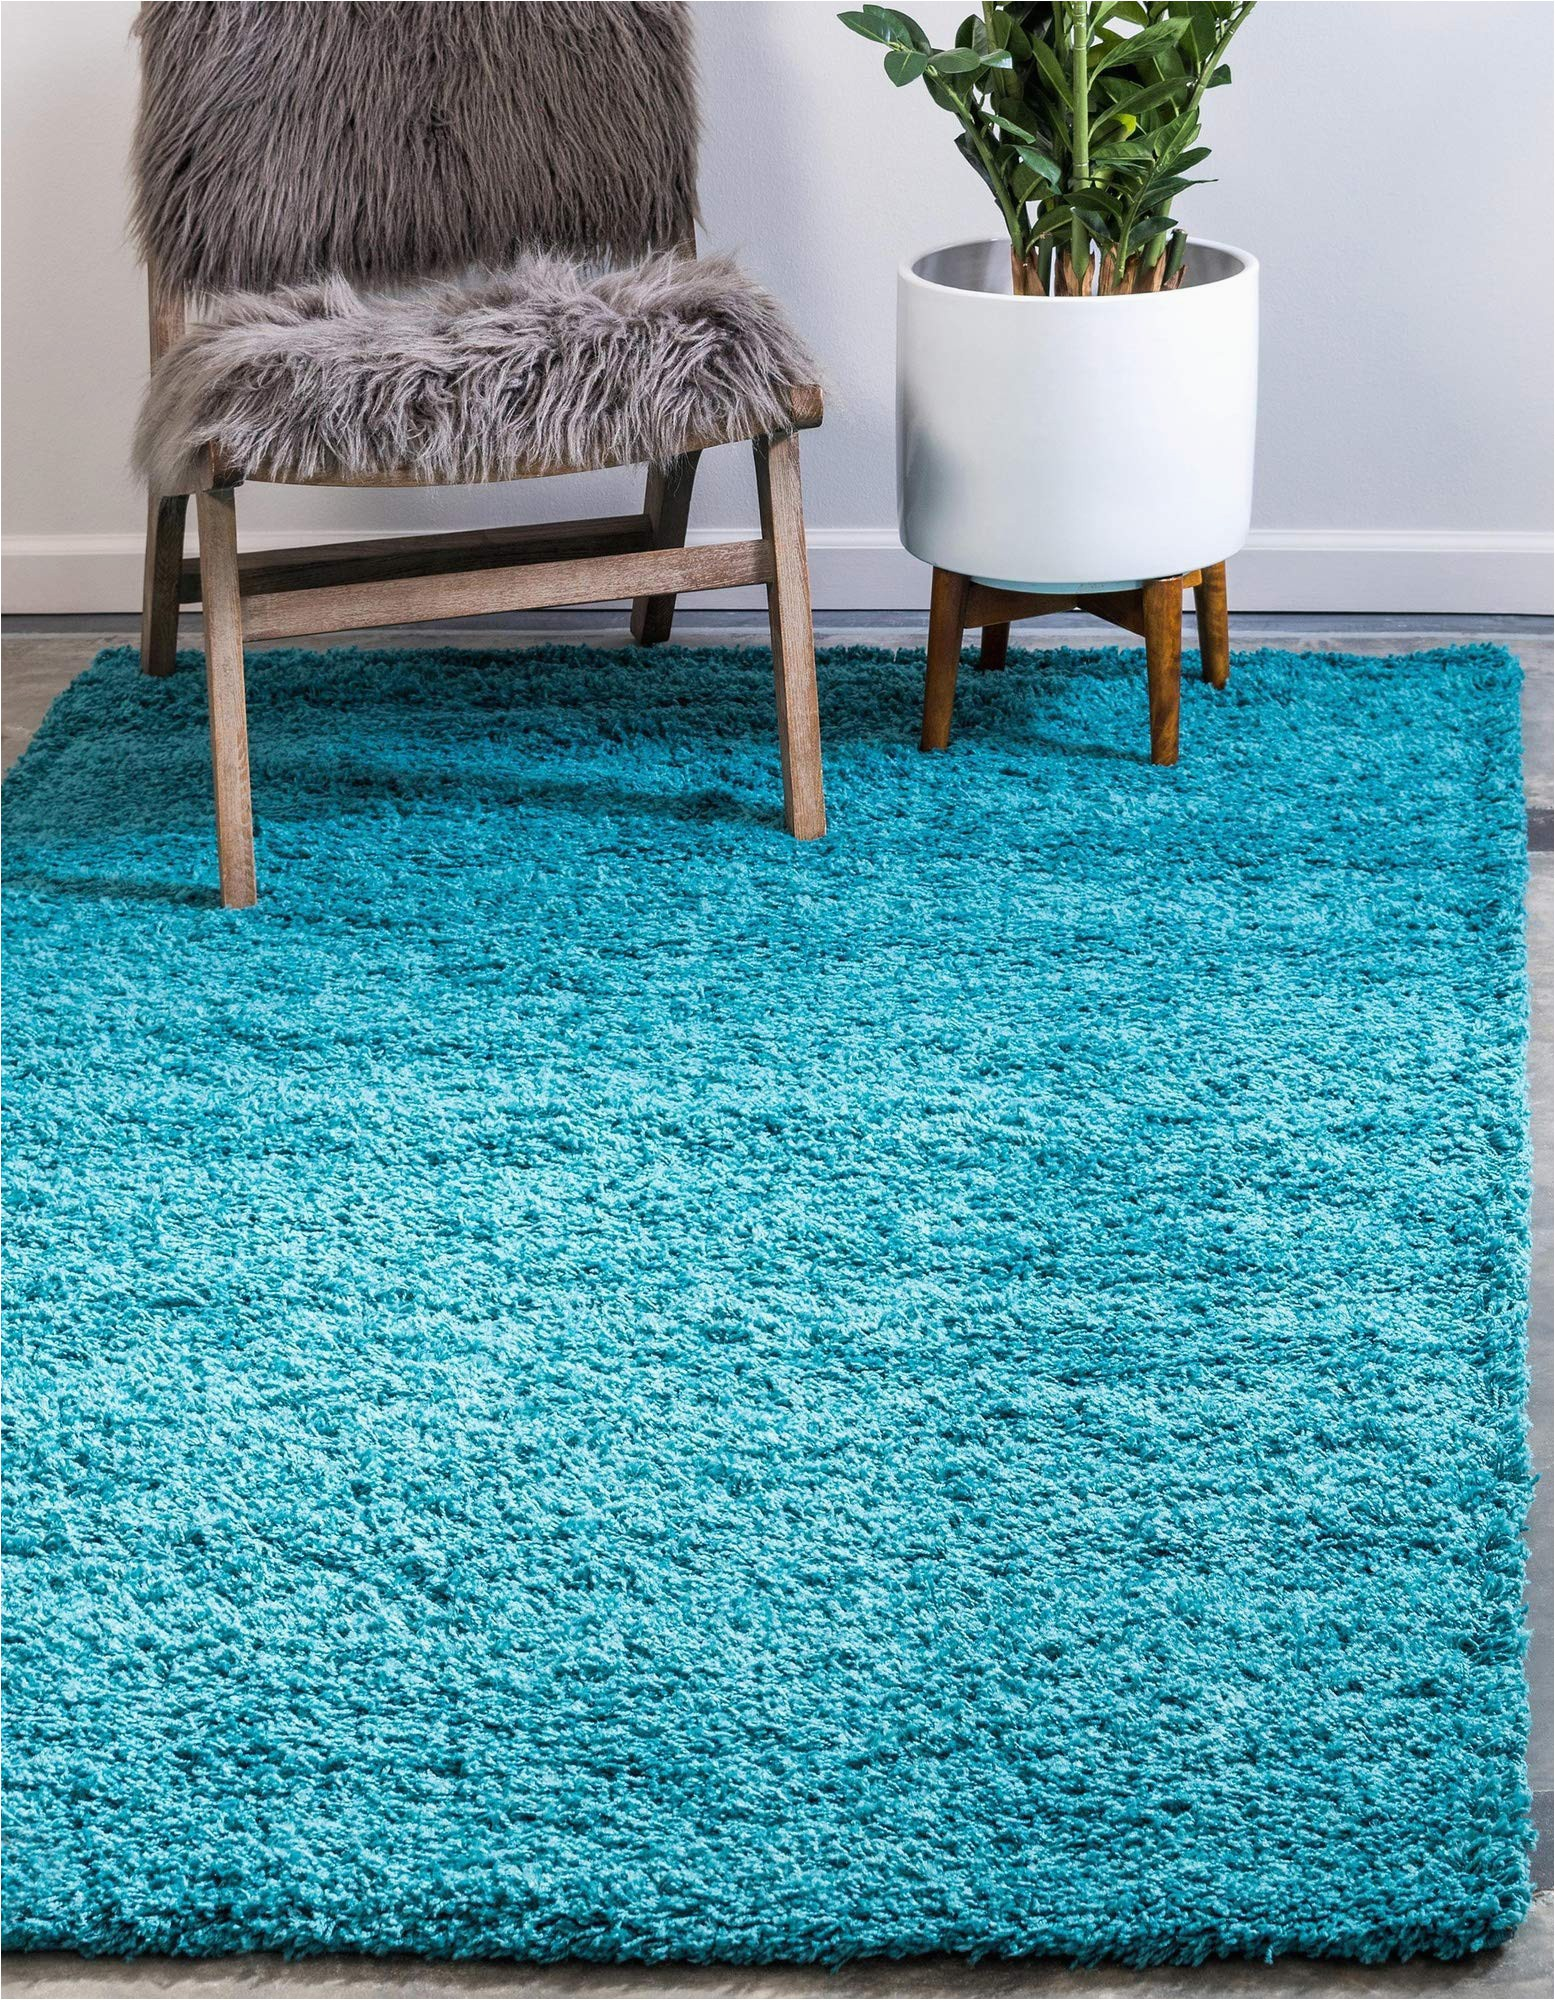 Teal Blue Shaggy Rug Bravich Rugmasters Very Large Teal Blue Shaggy Rug 5 Cm Thick Shag Pile soft Shaggy area Rugs Modern Carpet Living Room Bedroom Mats 160×230 Cm 5ft3